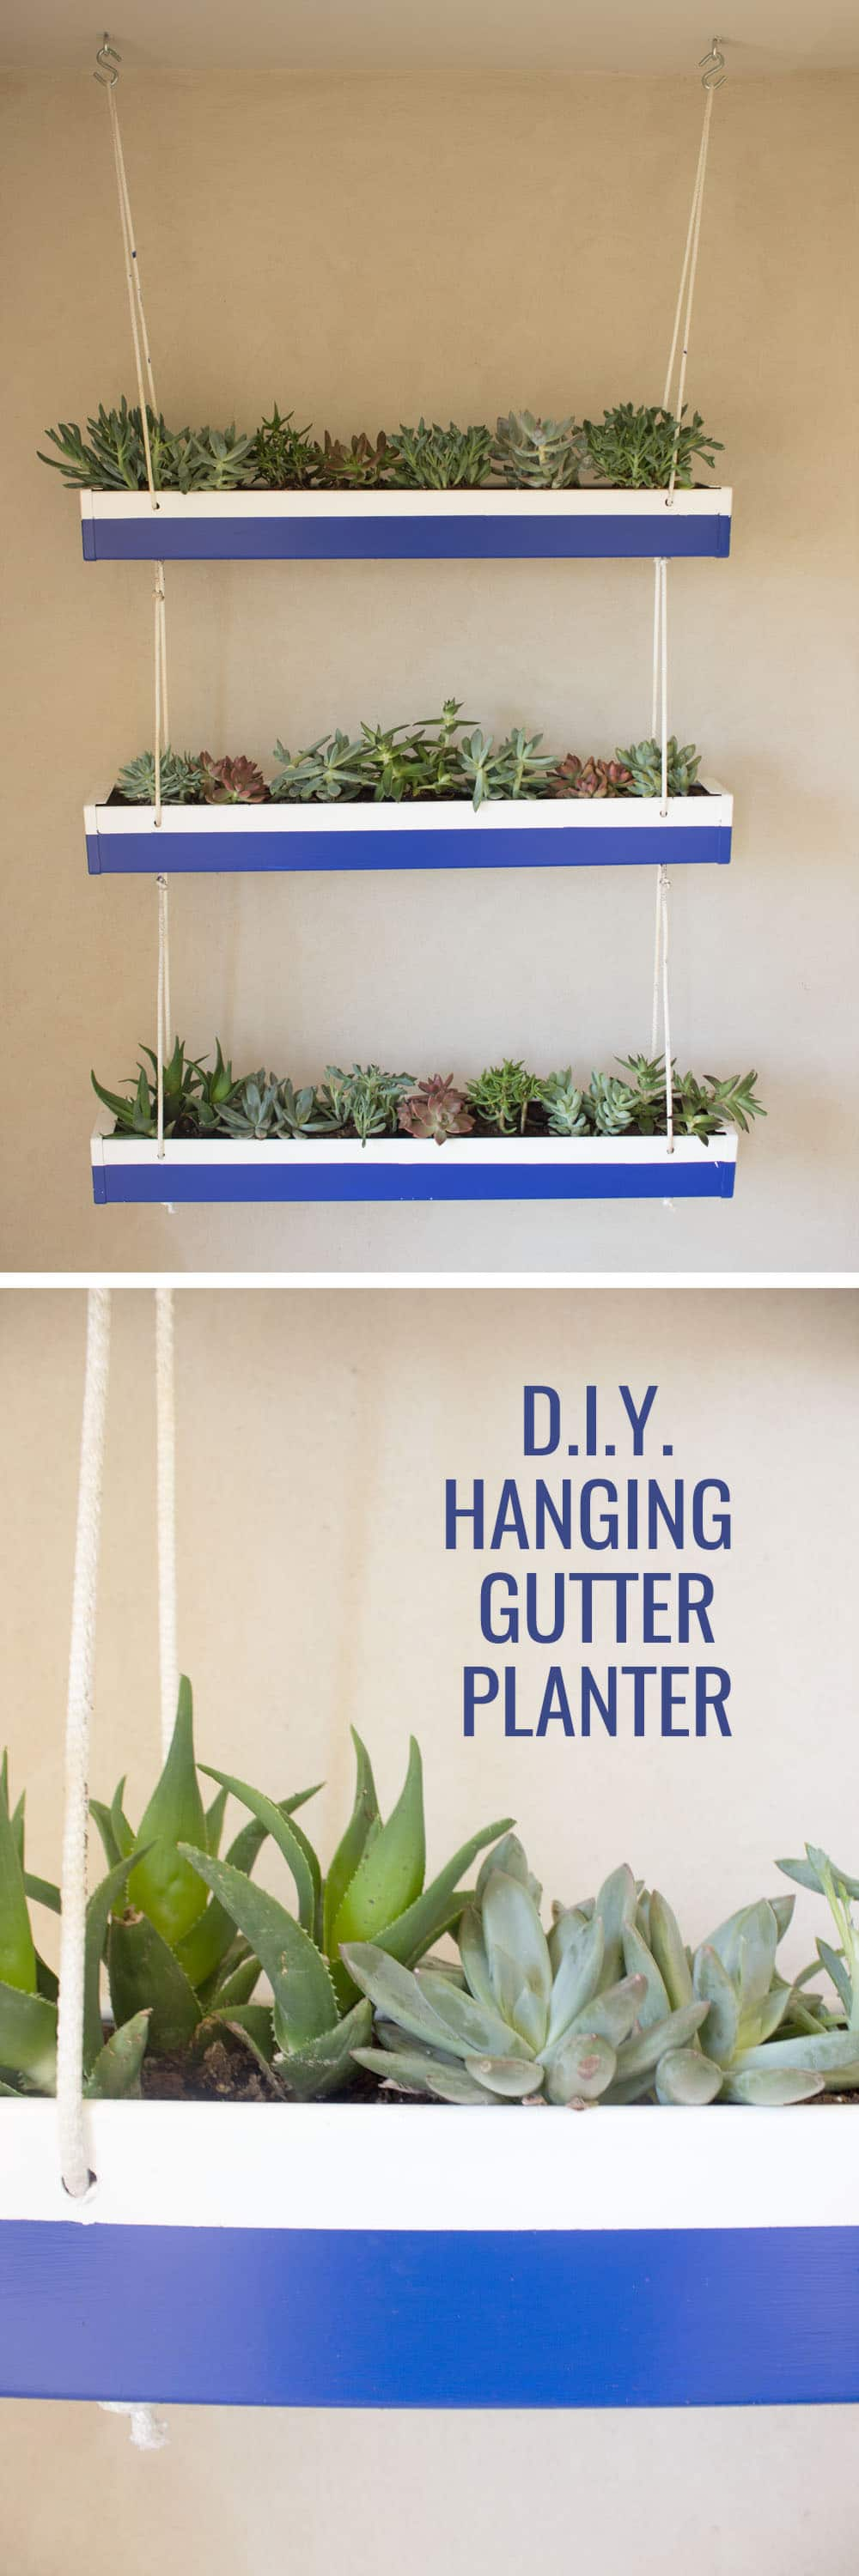 Okay seriously? How adorable is this DIY hanging gutter planter??! So cheap to make, too! Can't wait to try it out.